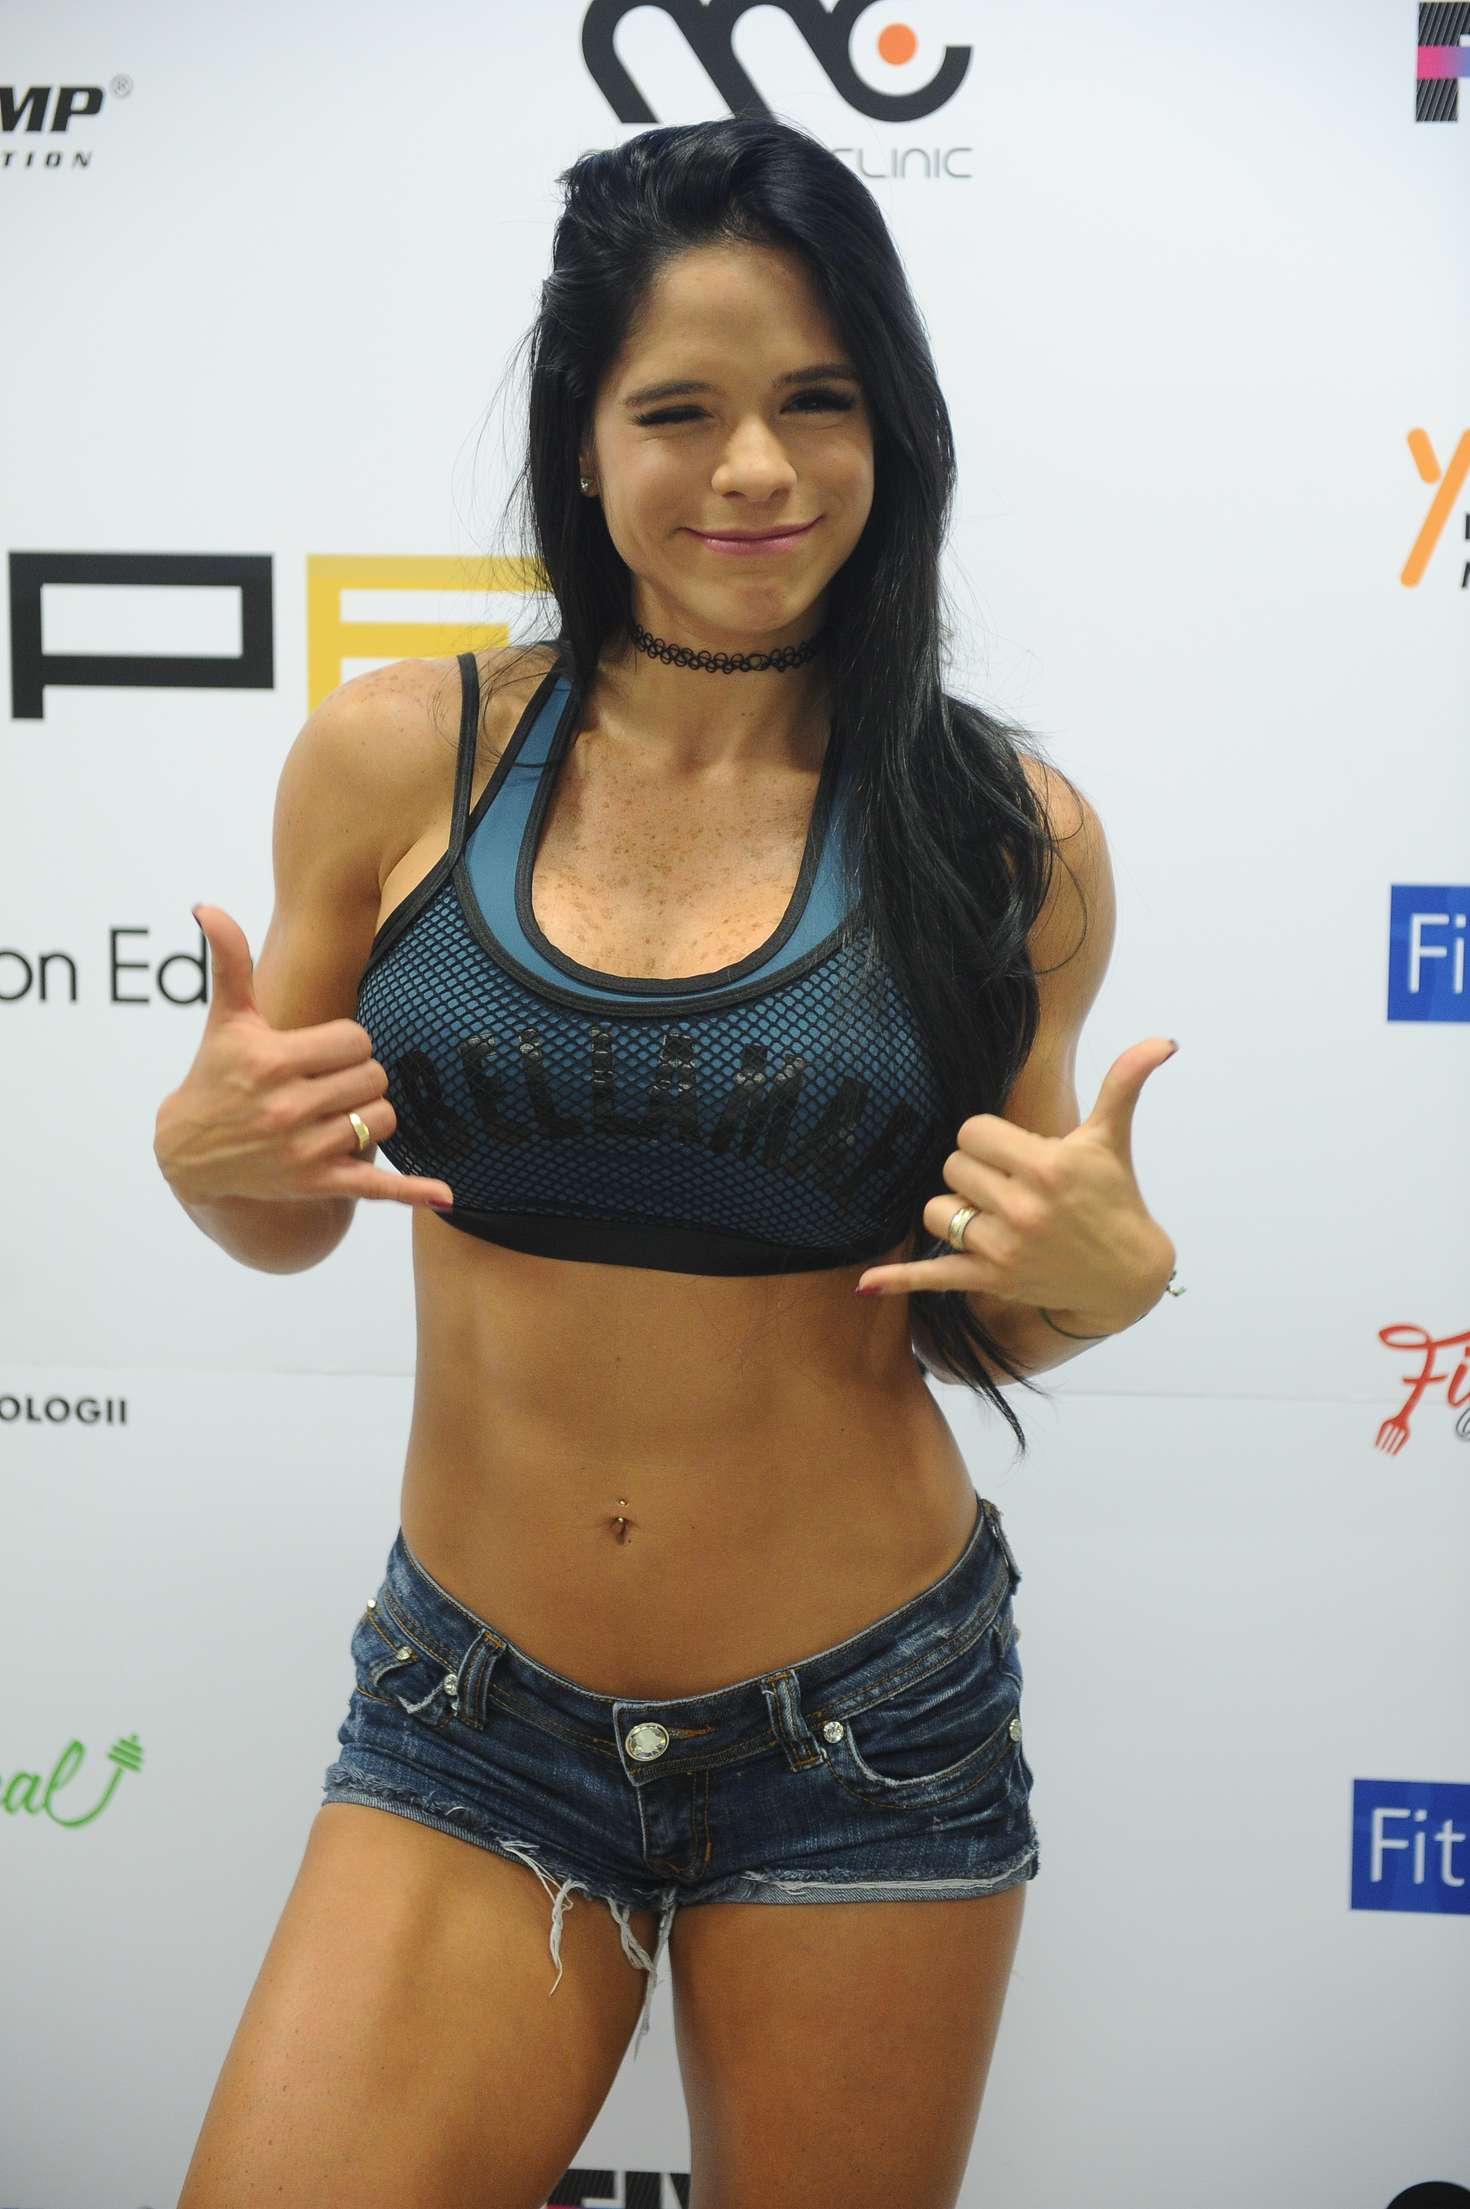 Michelle Lewin - 'PEI 2016' International Conference on Fitness in Warsaw